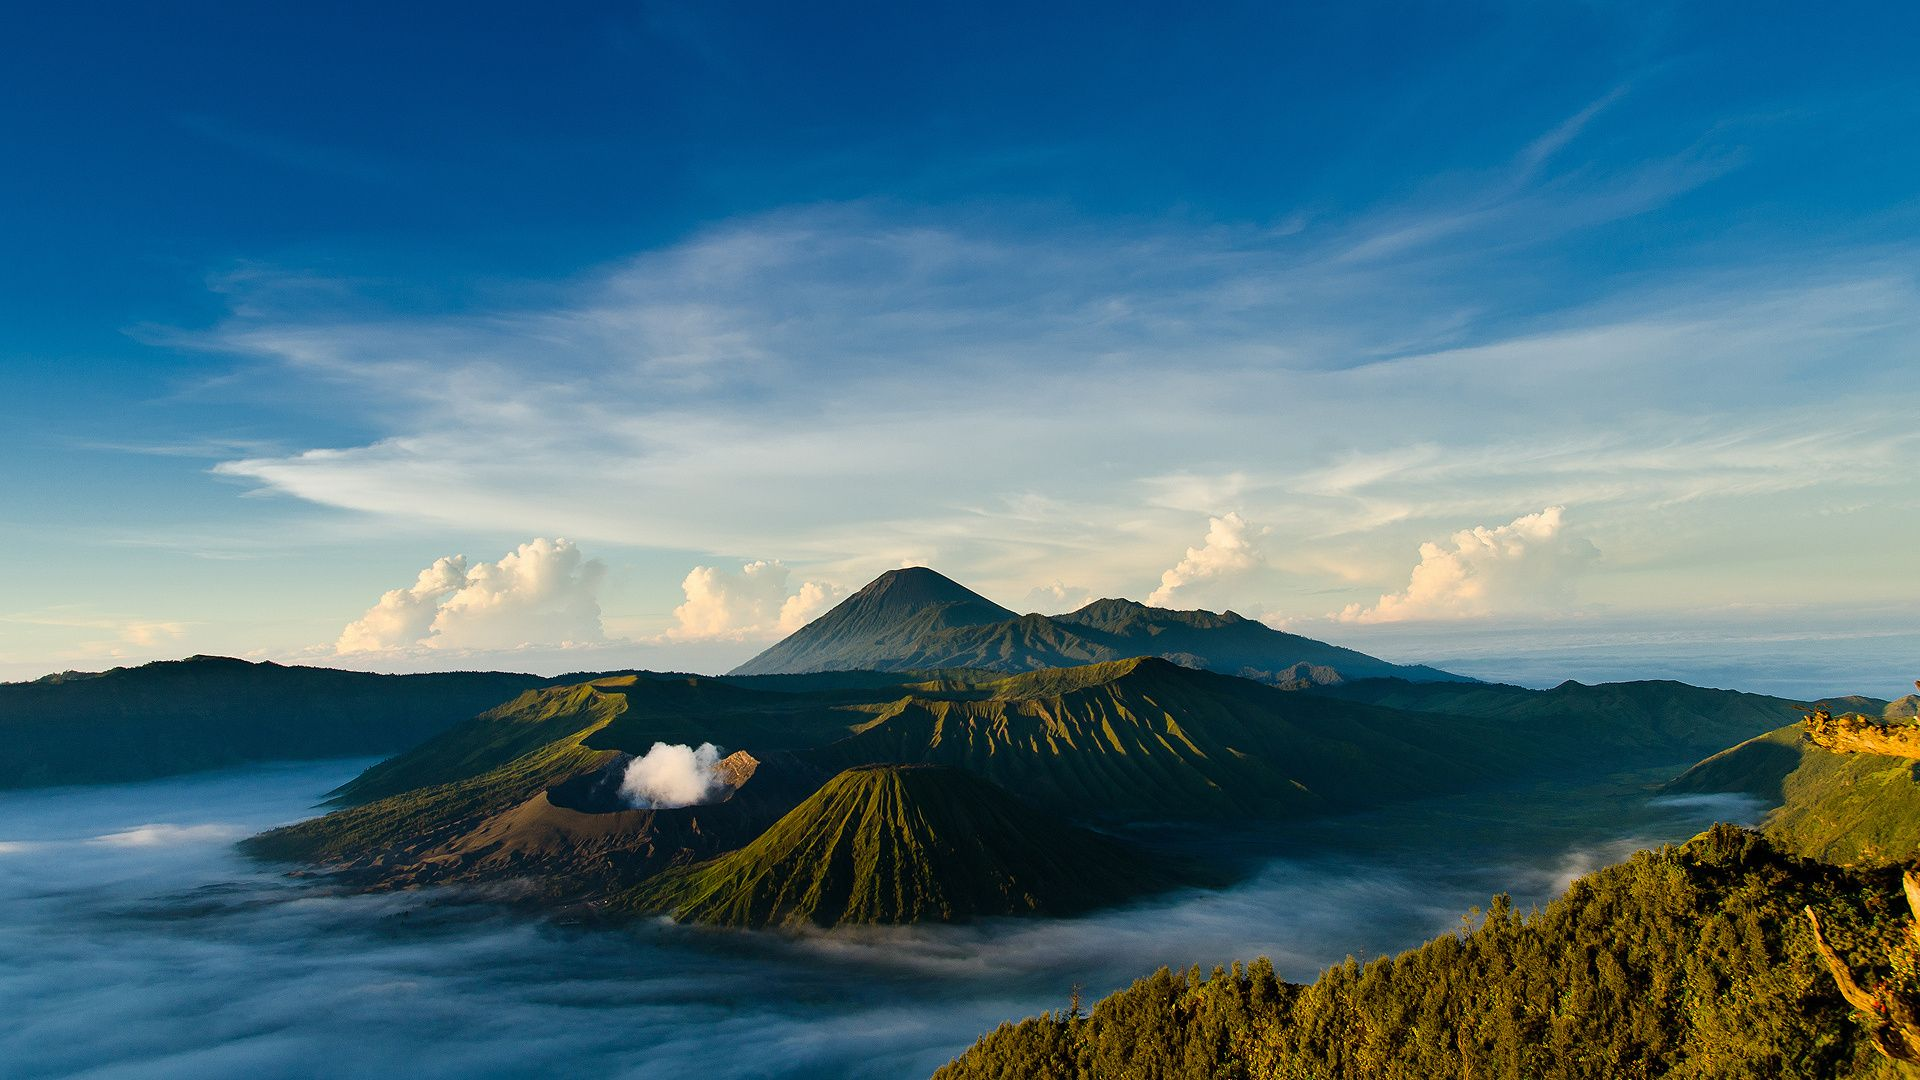 Amazing Mountains Clouds Nature Hd Wallpaper 1920x1080 Hd Scenery Mountain Landscape Photography Volcano Wallpaper